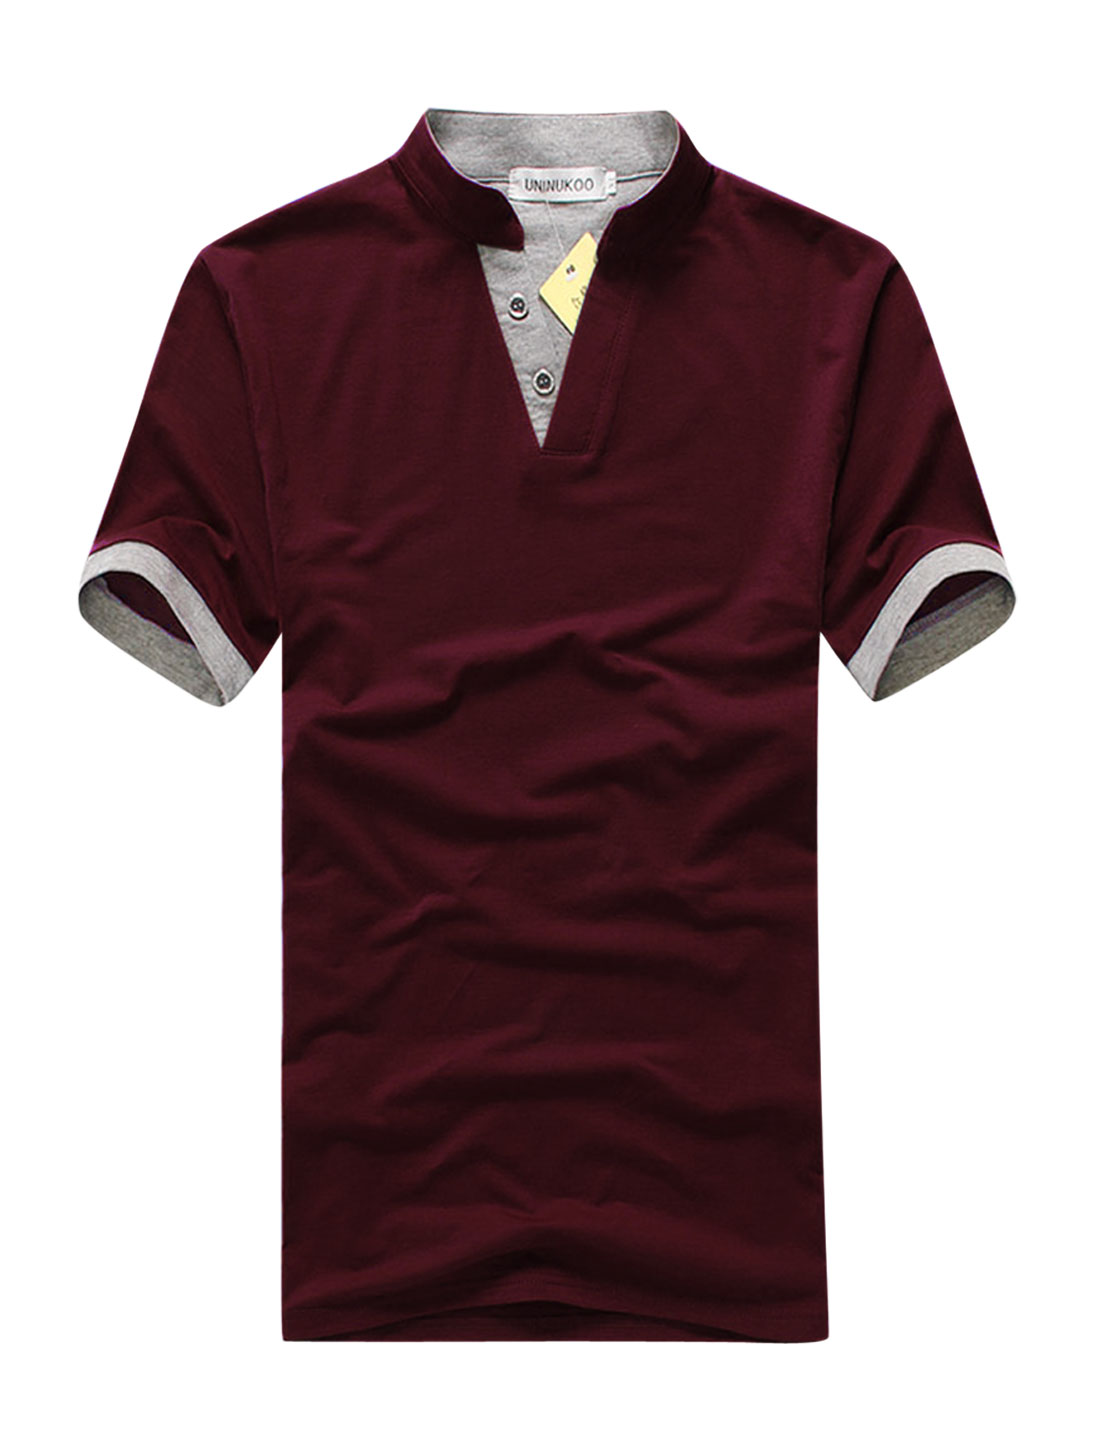 Men Slipover Stand Collar Two Buttons Closed Trendy Slim Shirt Burgundy M